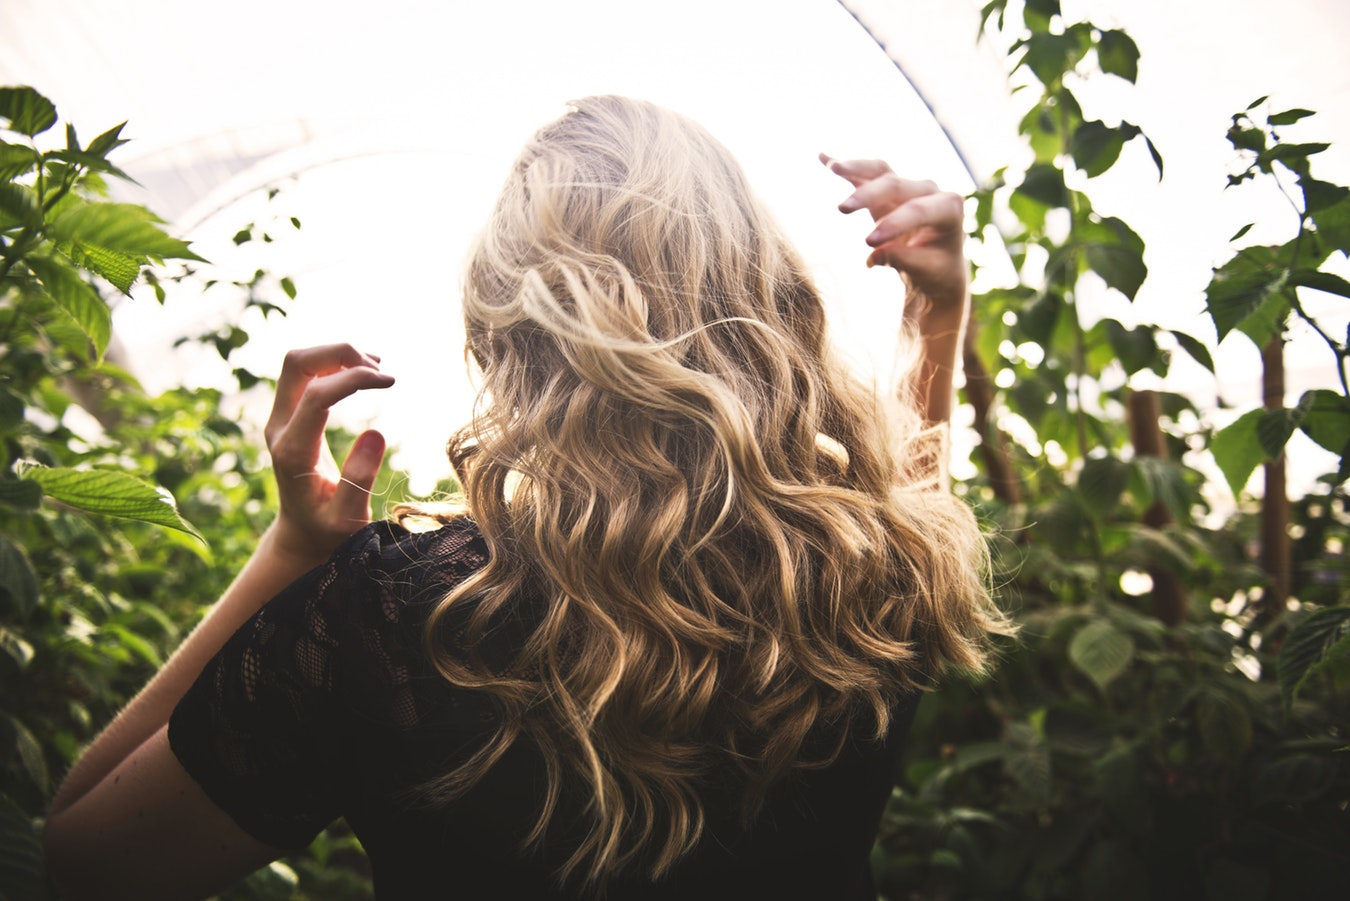 Vacationing For The Holidays? Here Are 8 Simple Ways To Protect Your Hair While Traveling